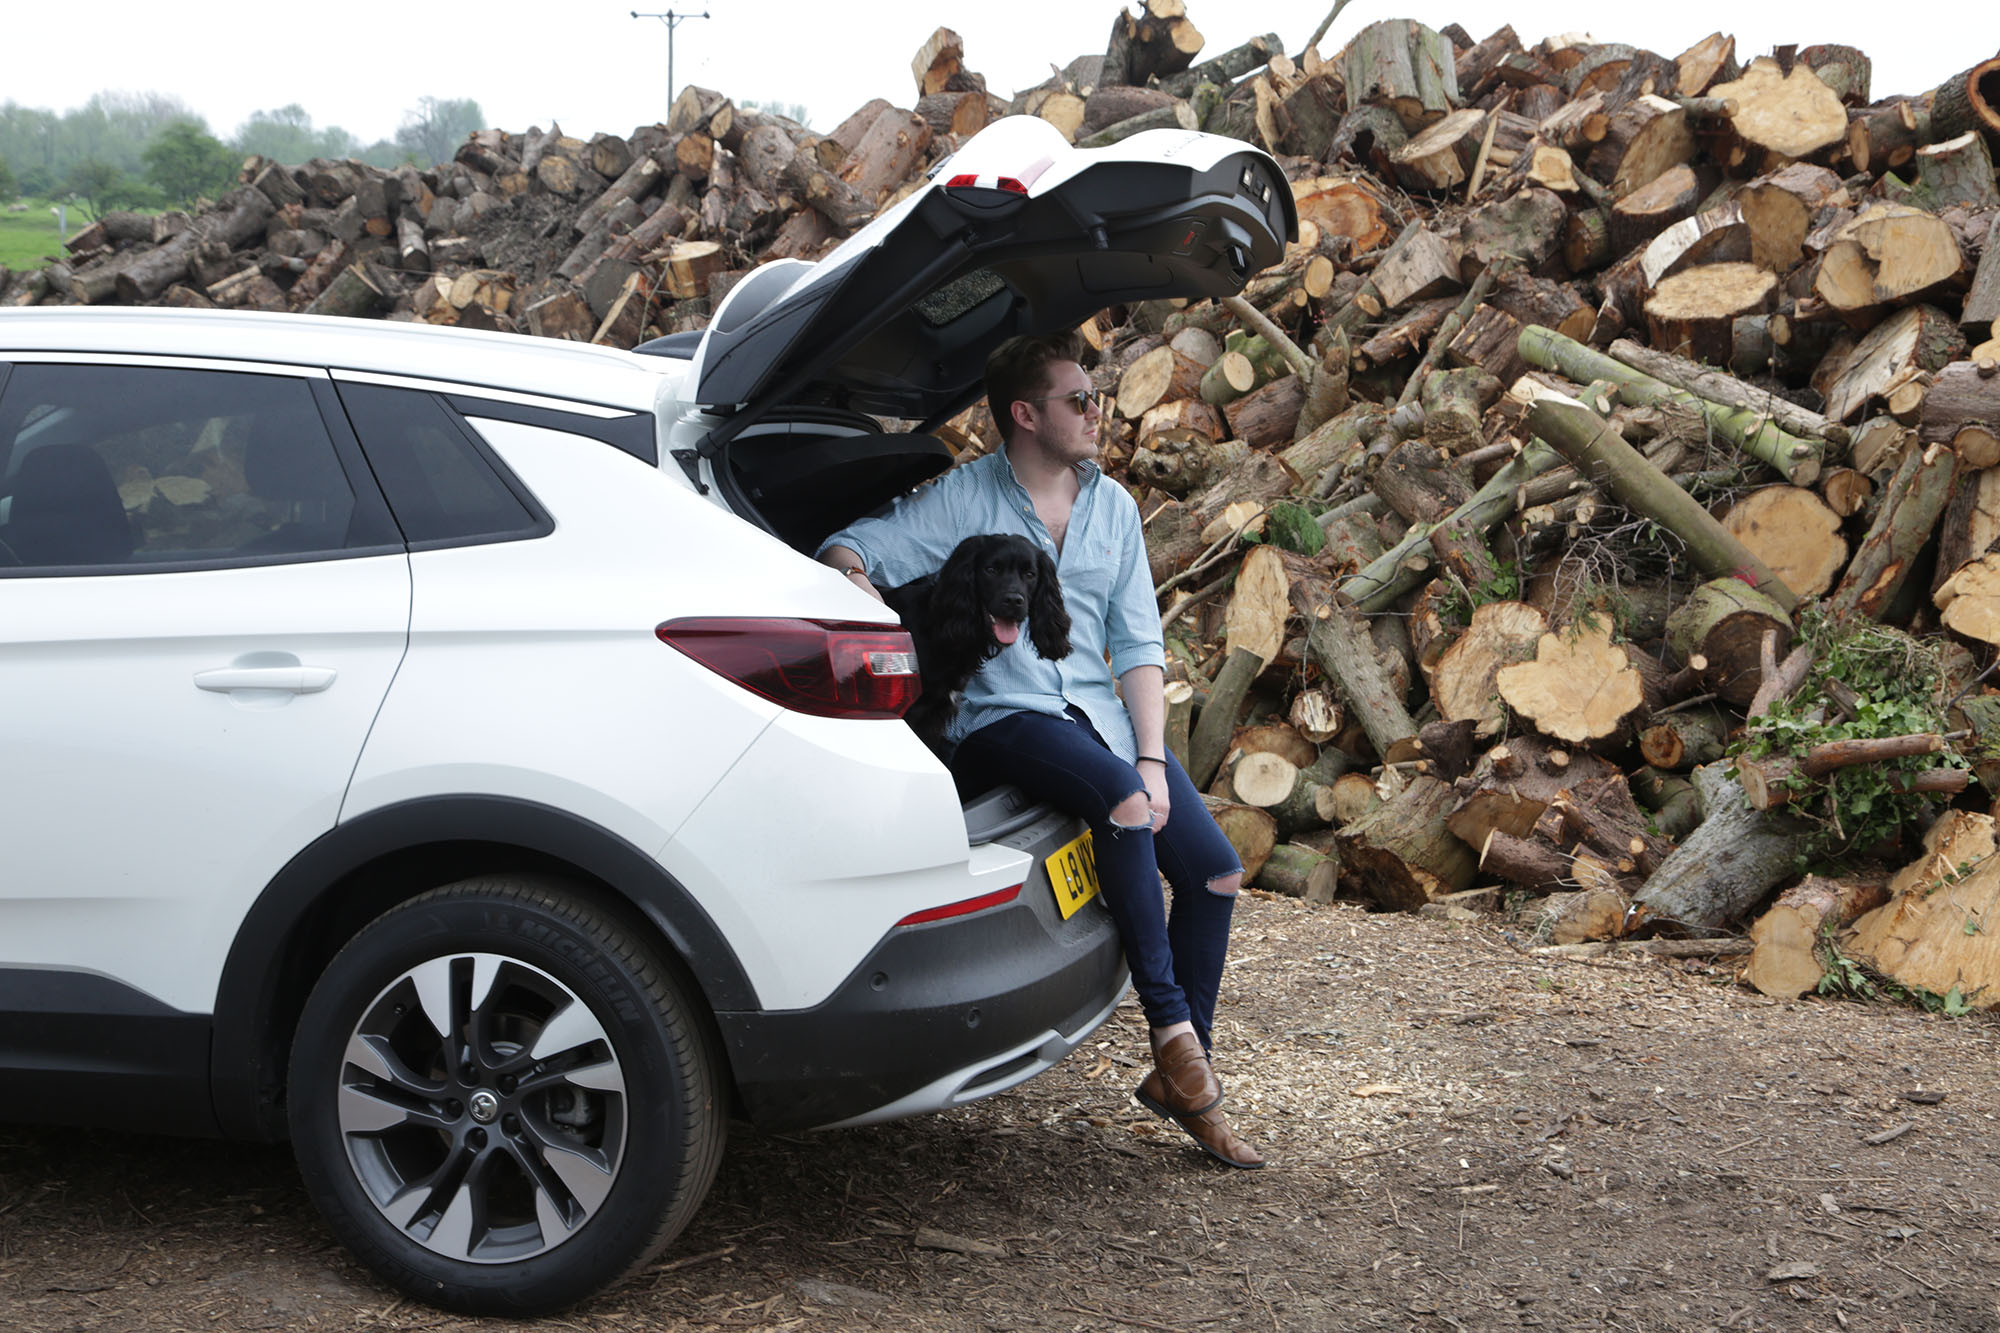 Man and dog in car, man in 4x4, 4x4 spacious,Vauxhall Grandland X, Vauxhall, dog